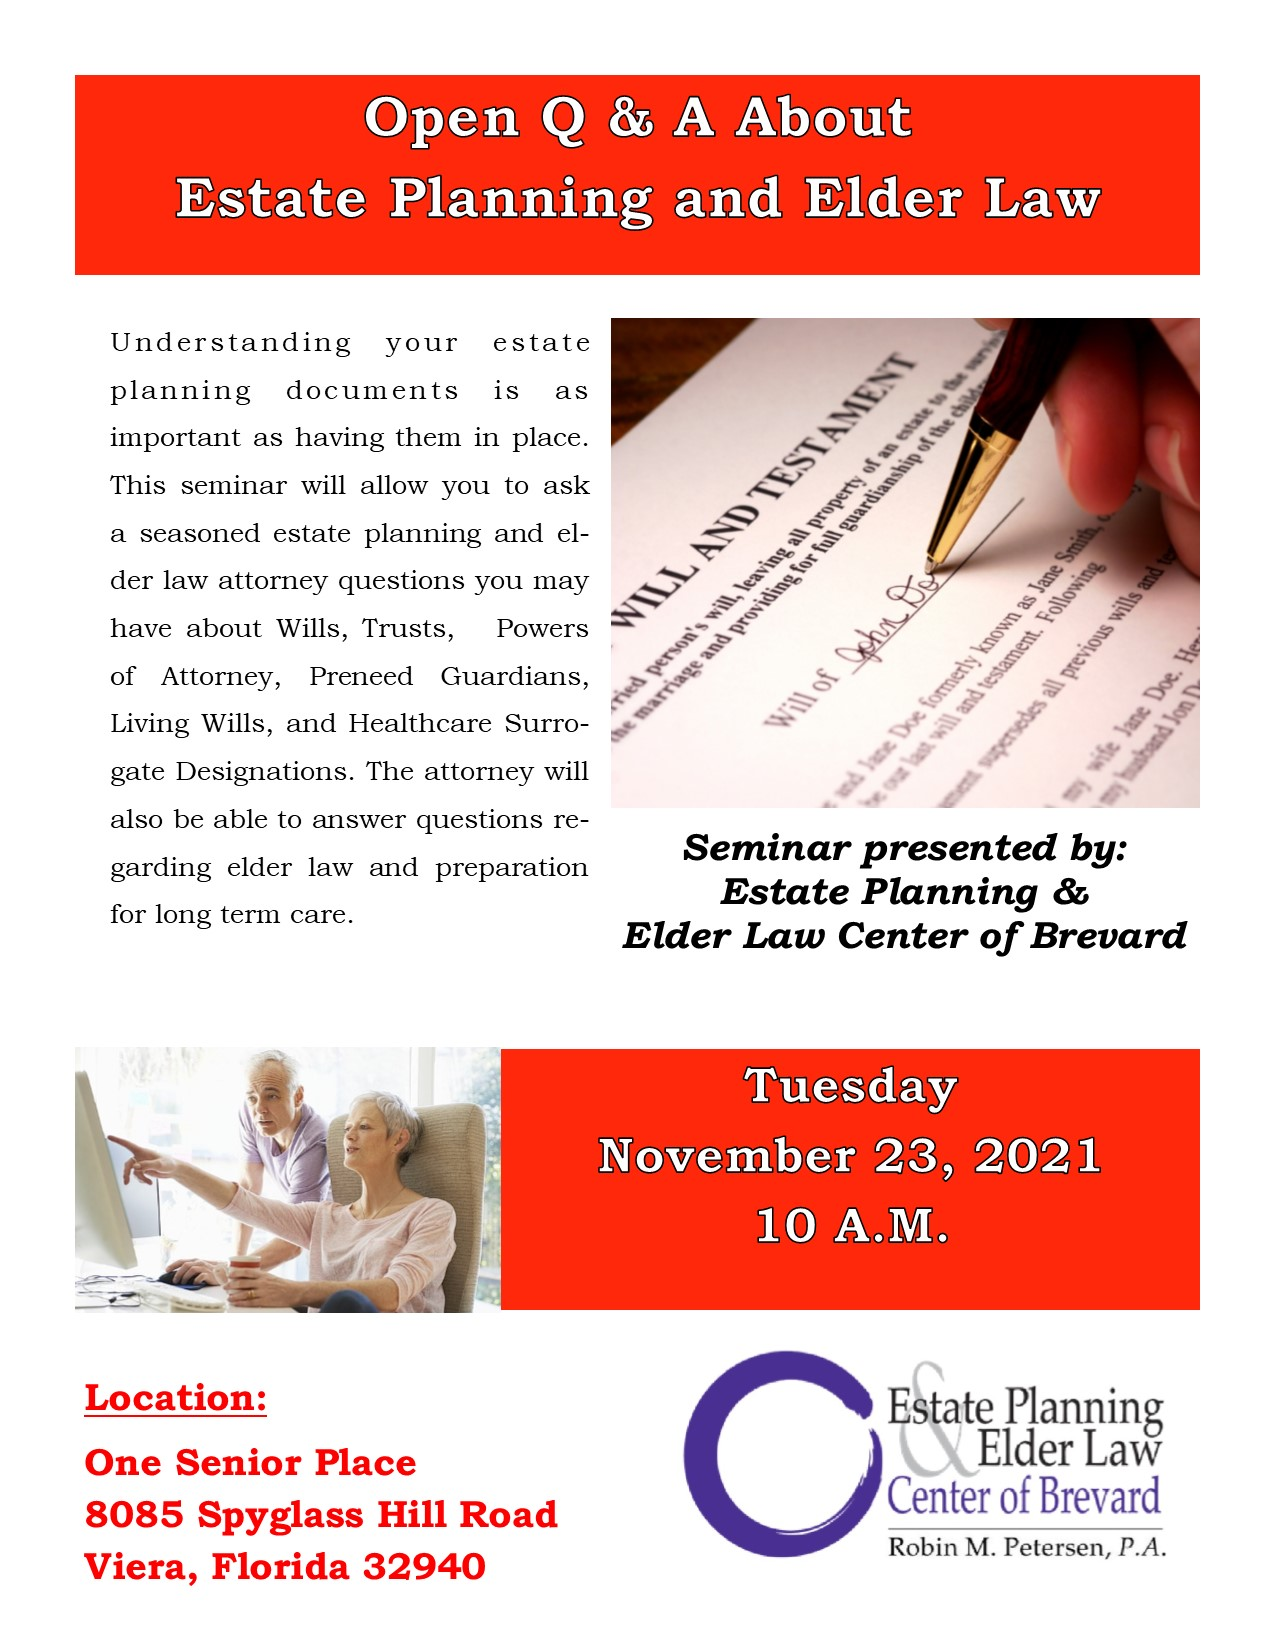 Open Q & A About Estate Planning and Elder Law